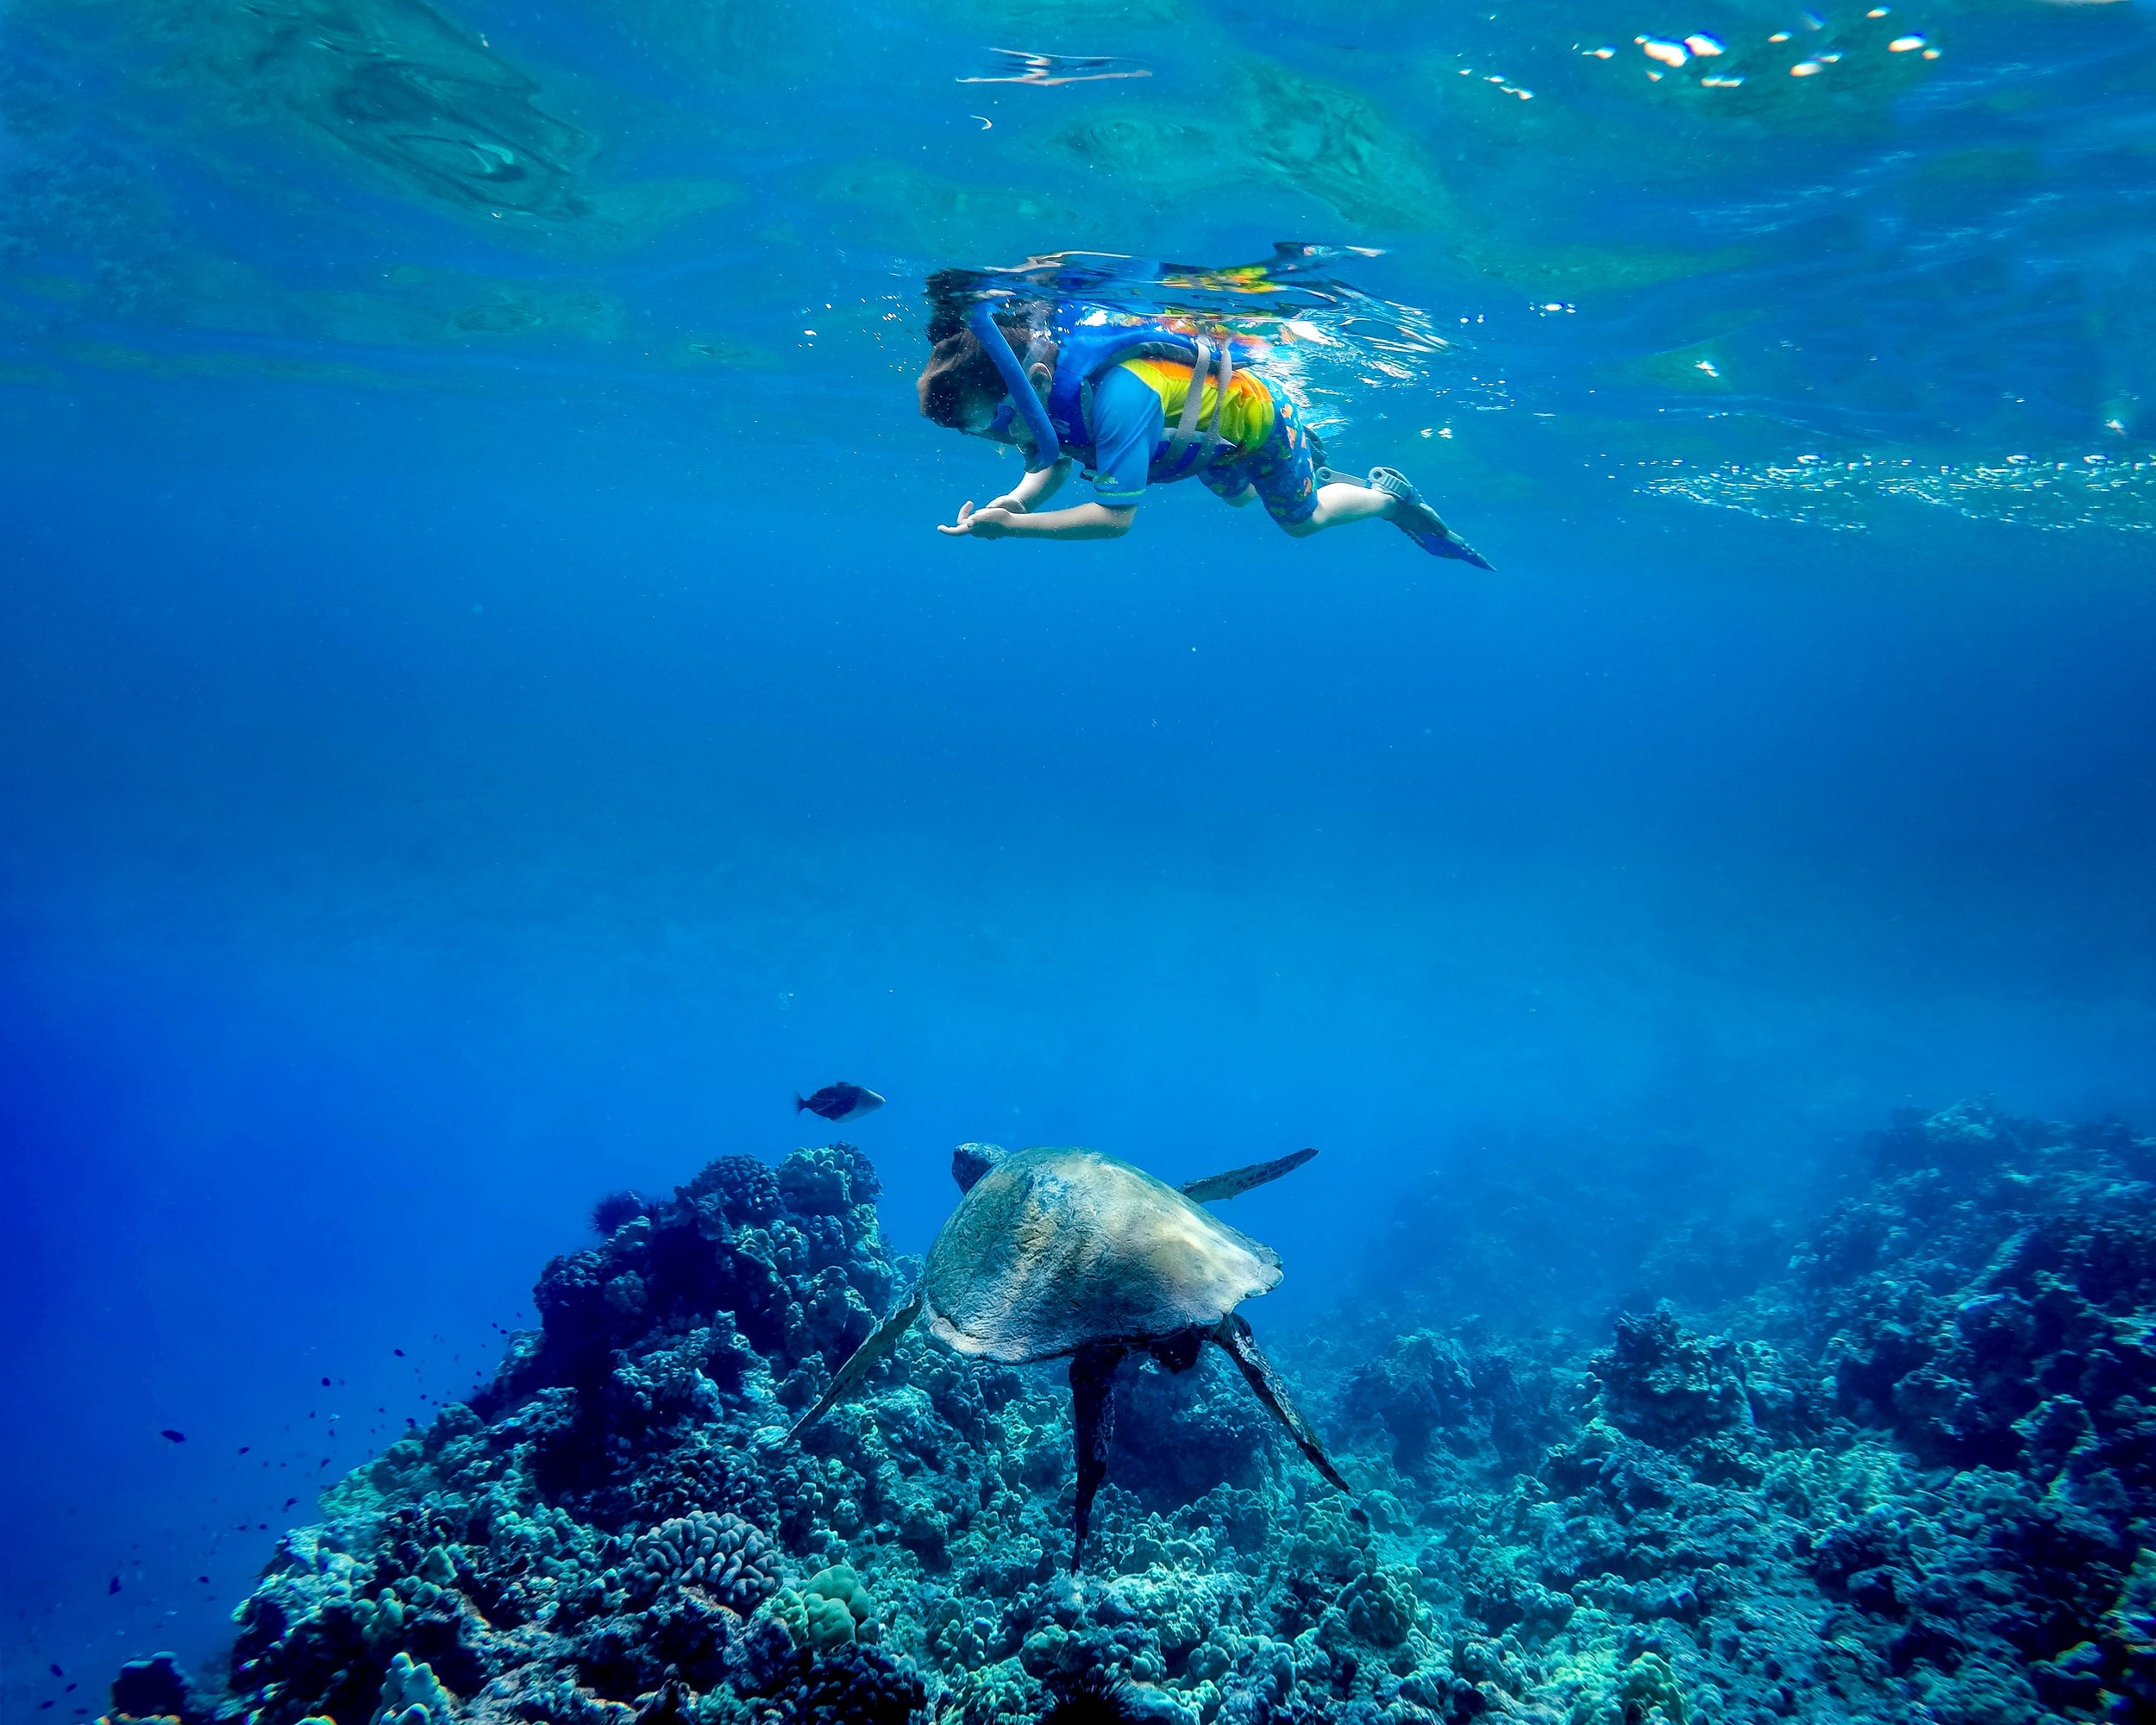 Molokini snorkel tour on Maui with kids